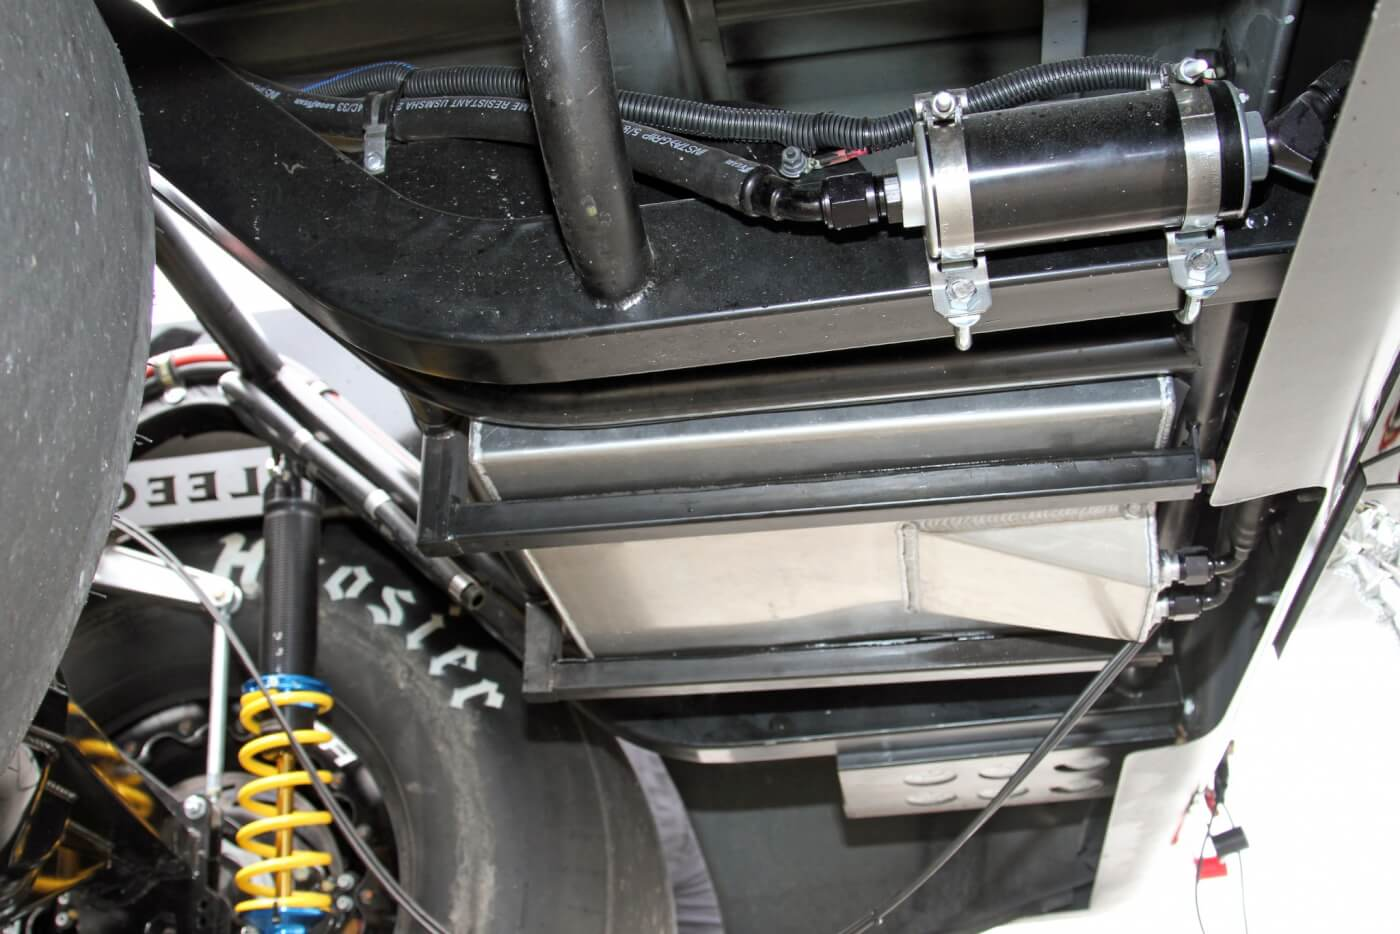 Crawling under the rear of the truck, you'll see the aluminum fuel cell securely mounted between the new frame rails. You can also see the Fuelab electric pump on the outside of the driver side rail and the battery mount on the outside of the passenger side rail.